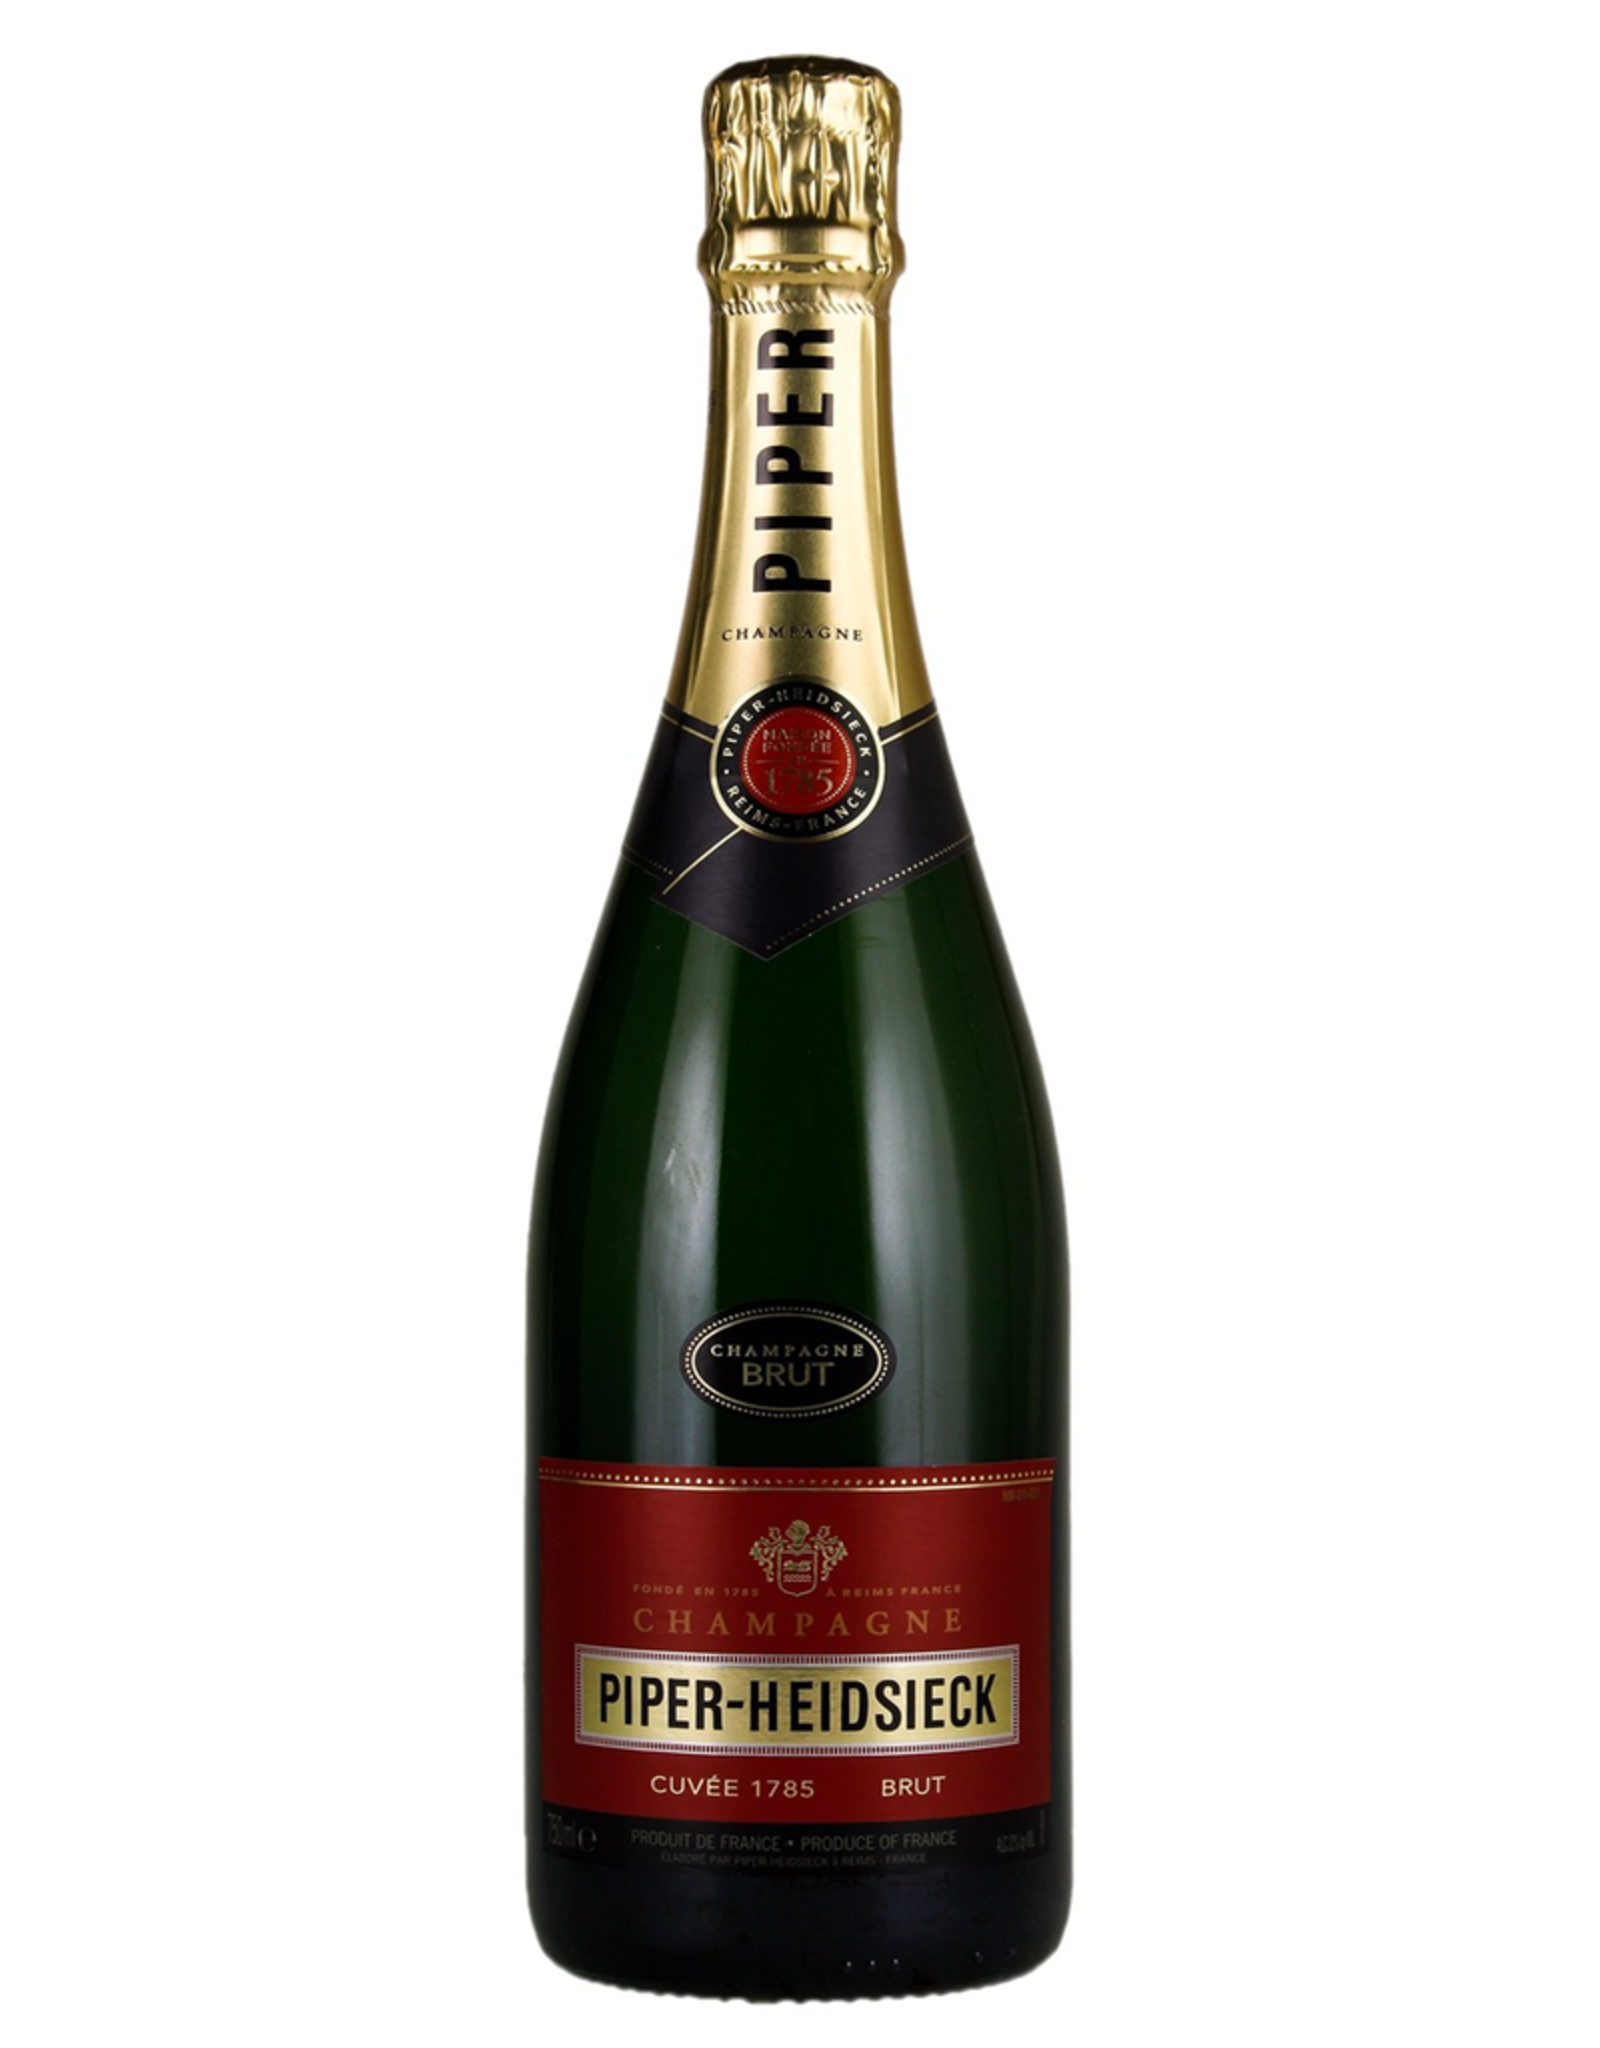 Sparkling Wine NV, Piper Heidsieck Cuvee 1785, Brut Champagne, Reims, Champagne, France, 12% Alc, TW